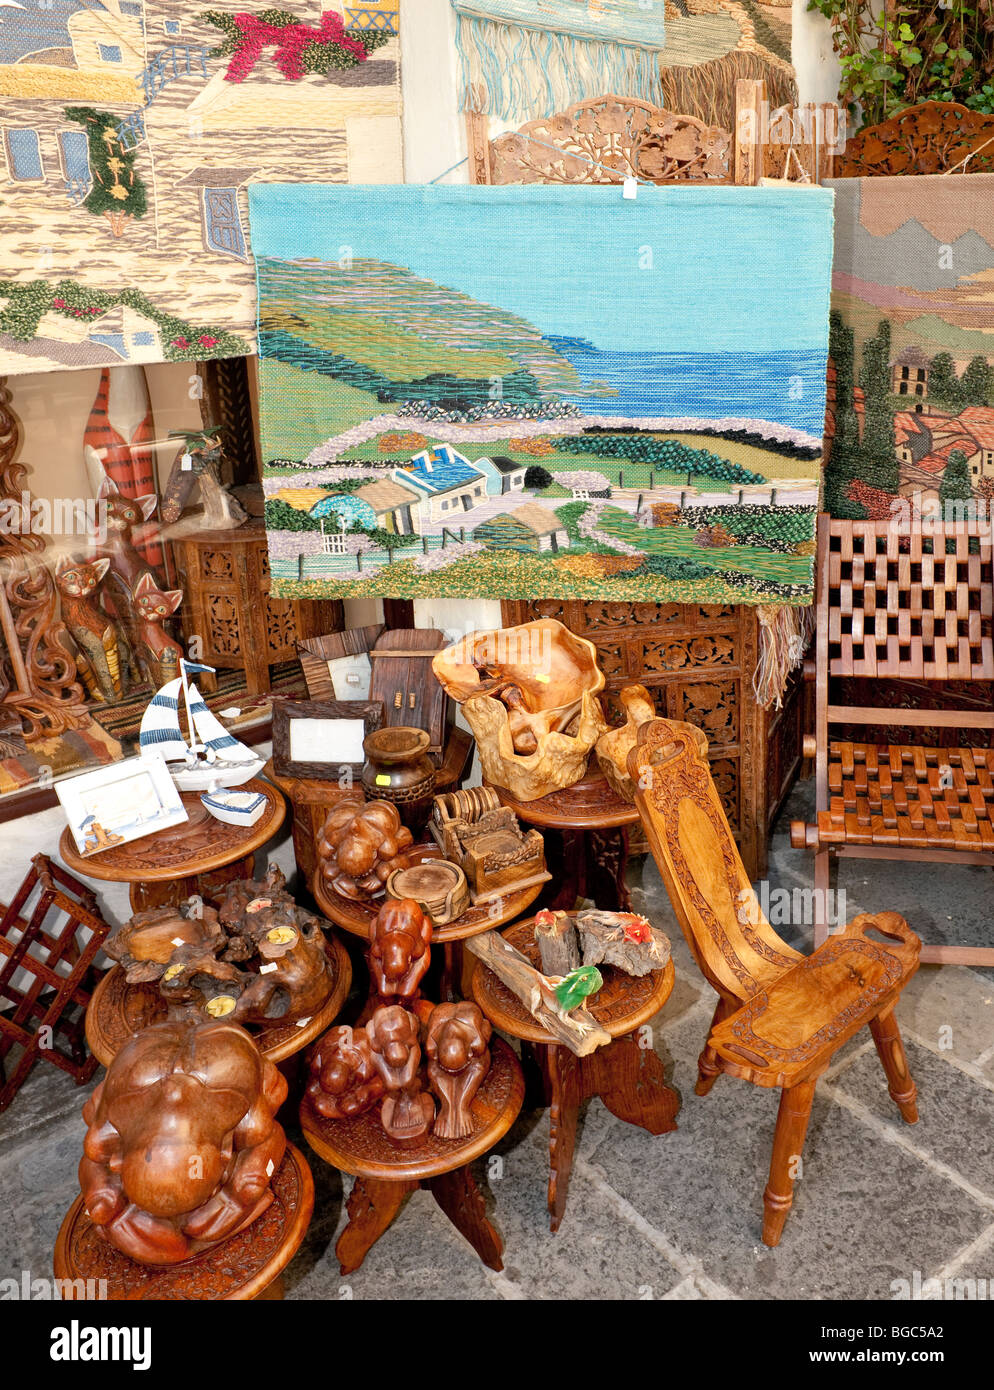 Souvenir shop, Rhodes town, Rhodes island, Greece, northern part, Aegean Sea, Southern Europe, Europe - Stock Image